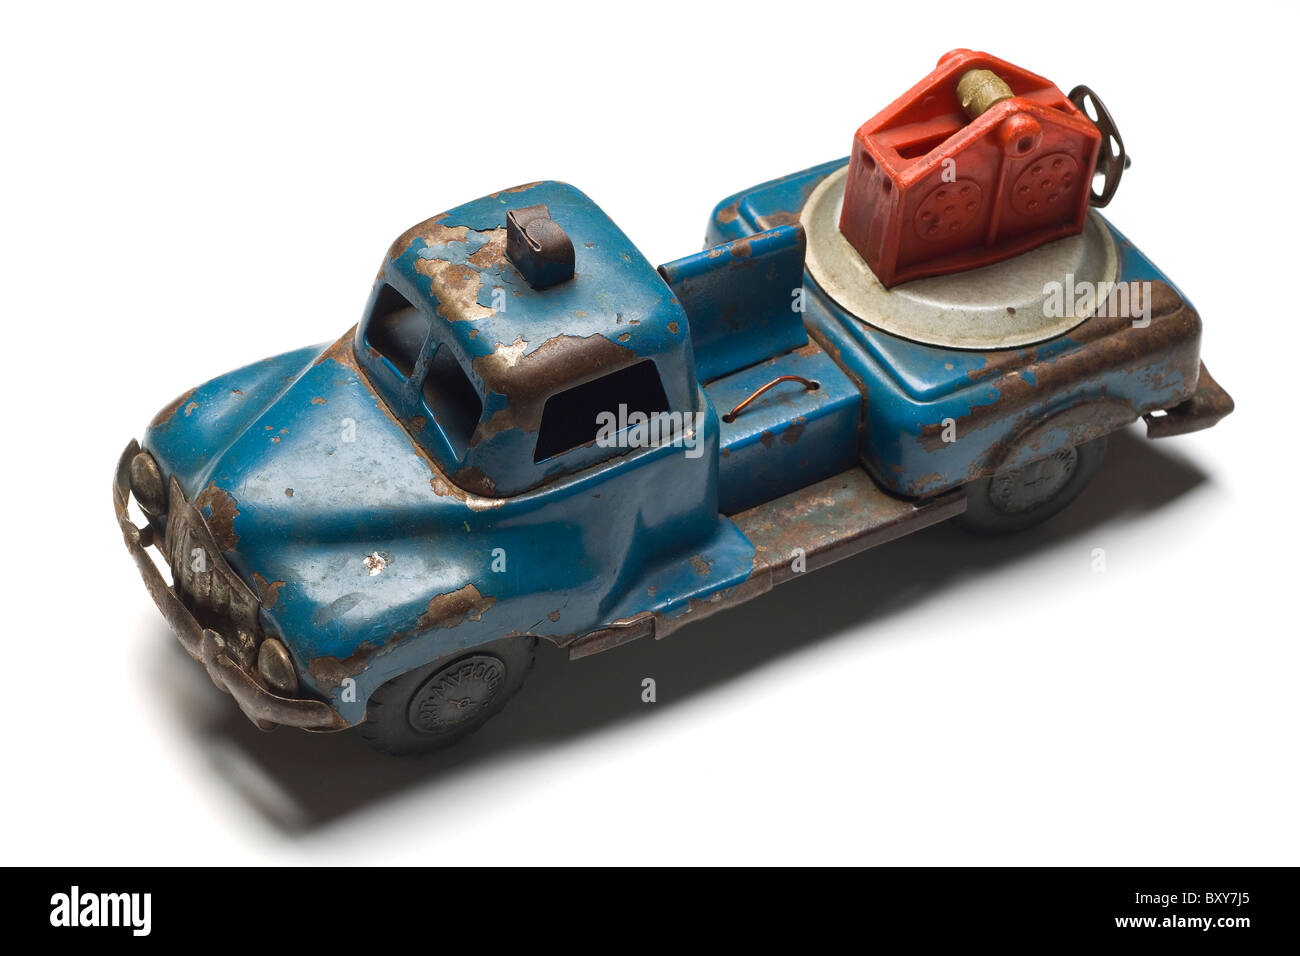 an old rusty toy tow truck on white - Stock Image